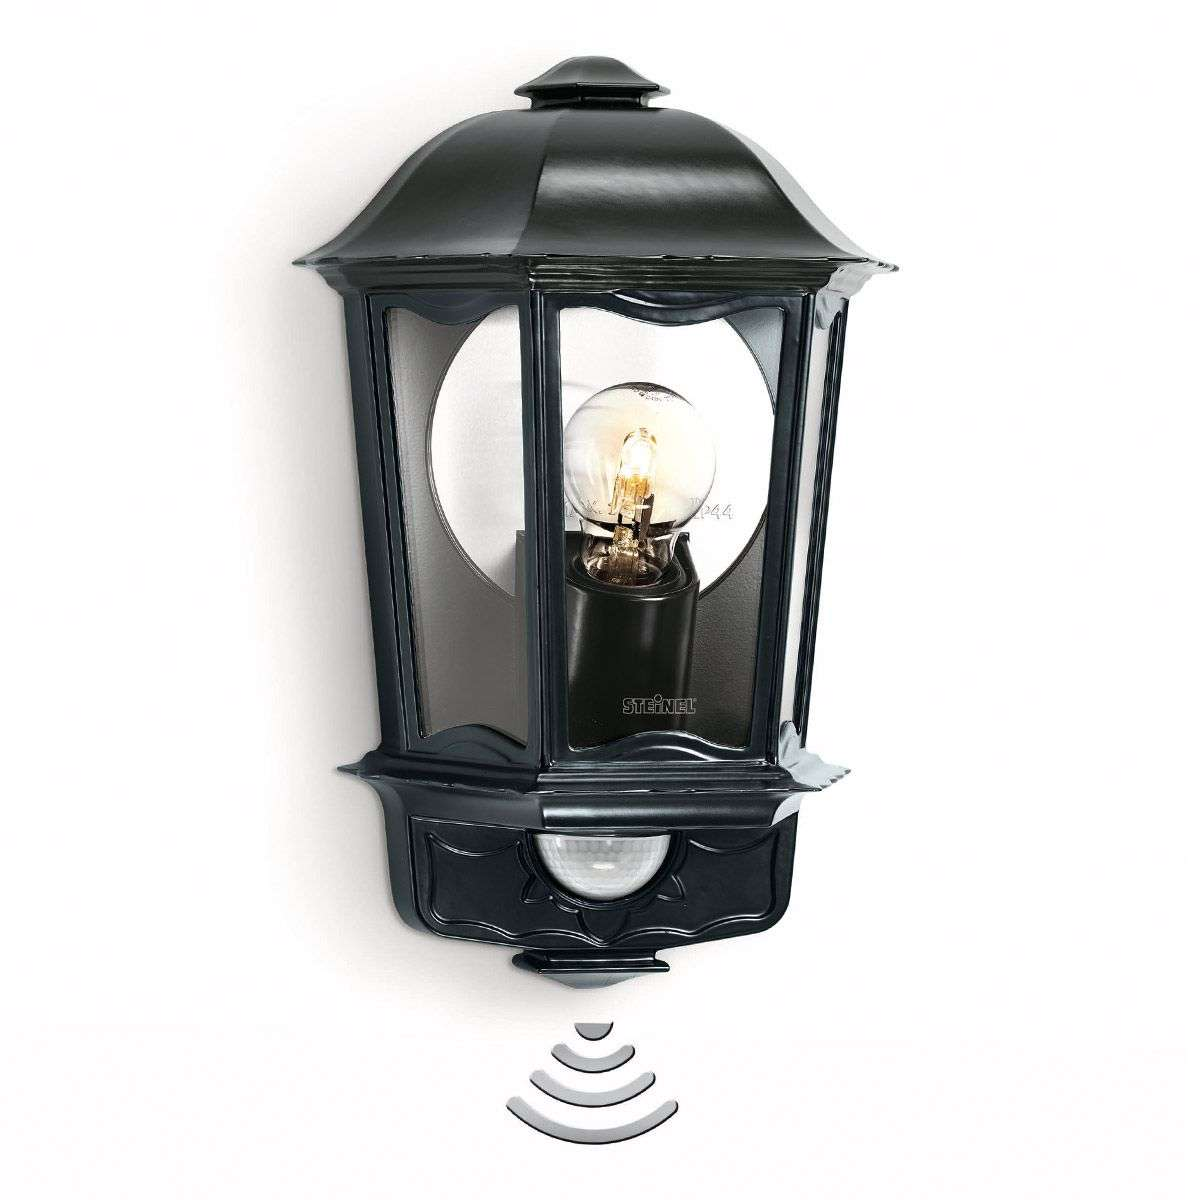 Outdoor Wall Light With Sensor: Steinel L 190 S Outdoor Wall Light With Sensor